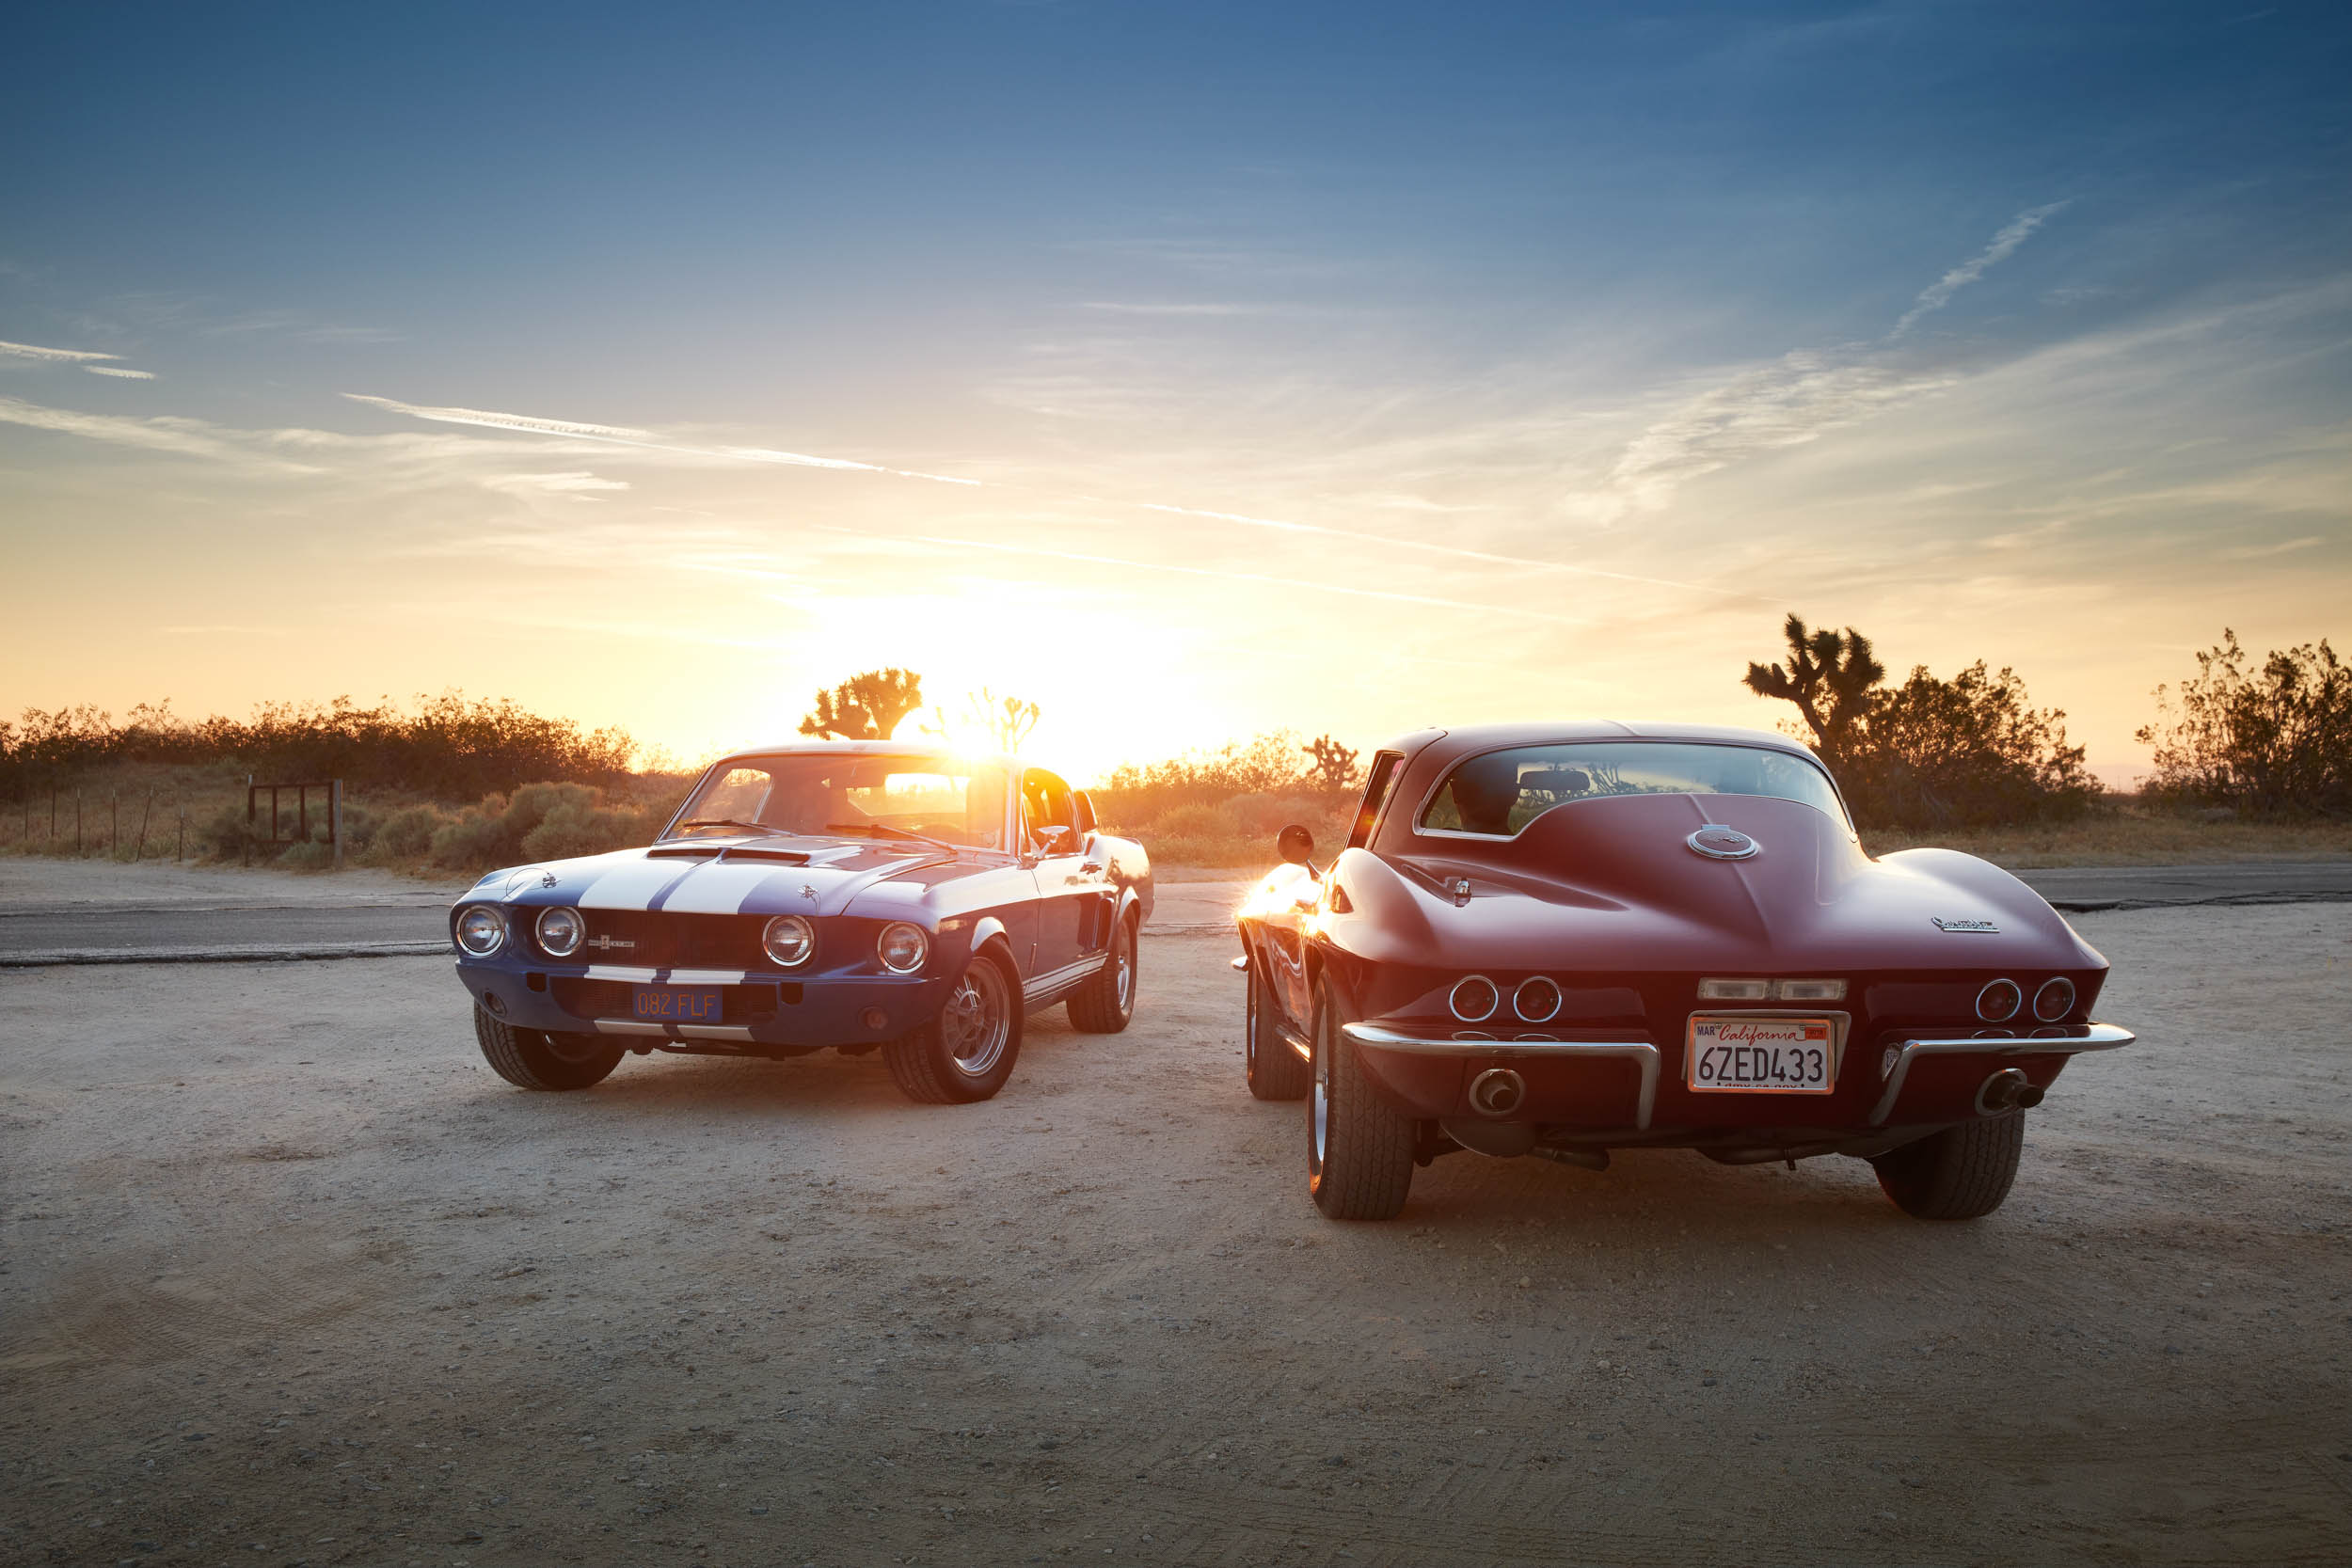 1967 GT350 and Corvette at sunset